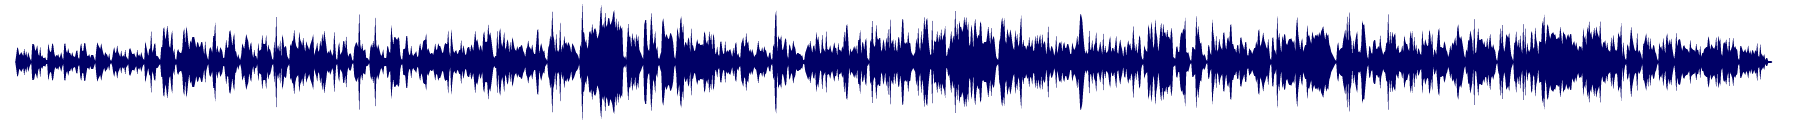 waveform of track #38850